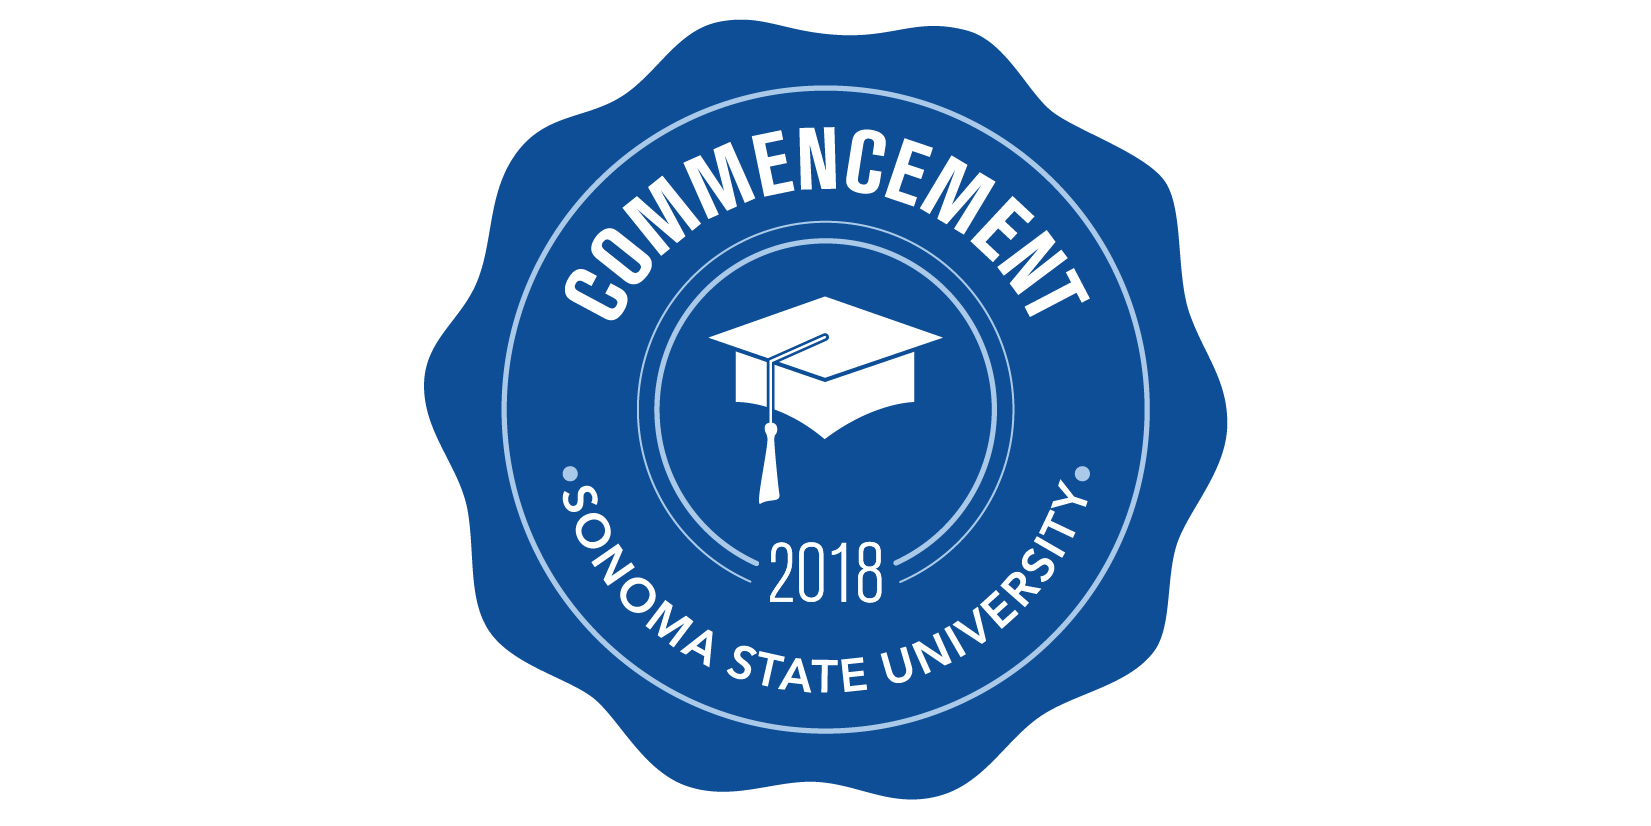 blue badge for SSU Commencement 2018